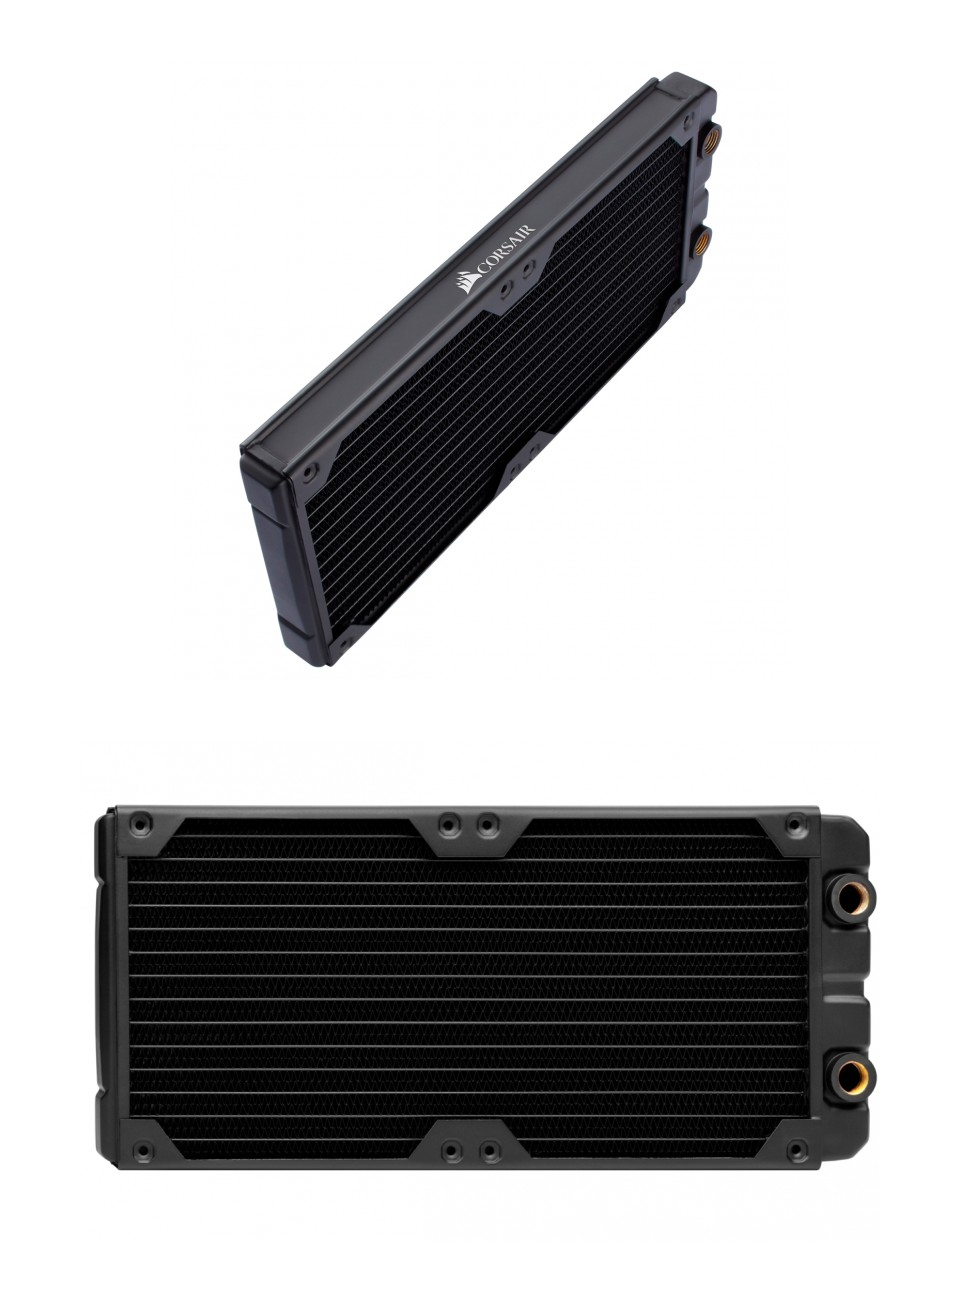 Corsair Hydro X Series XR5 280mm Water Cooling Radiator product